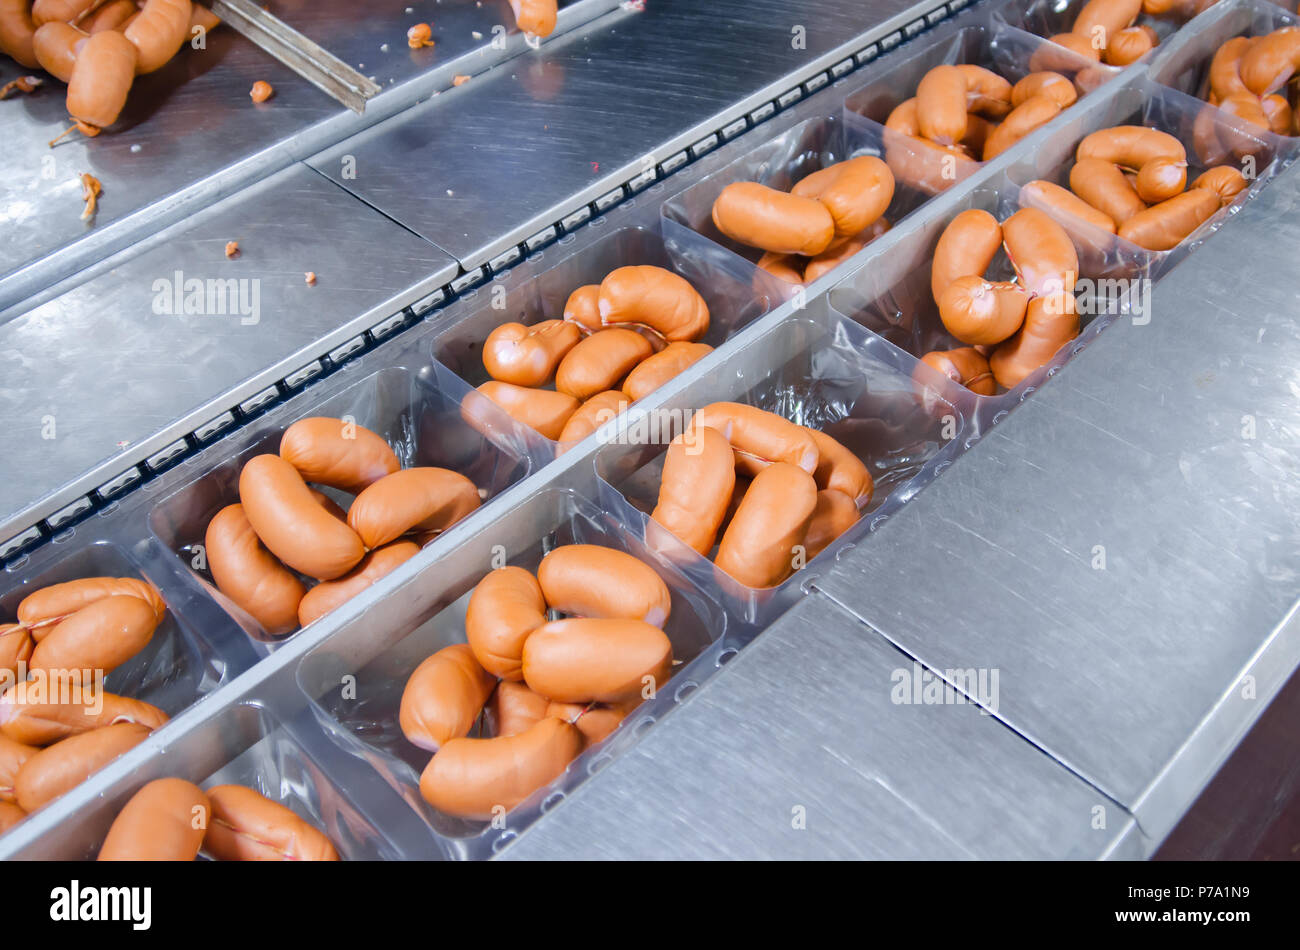 Sausages. Packing line of sausage. Industrial manufacture of sausage products - Stock Image